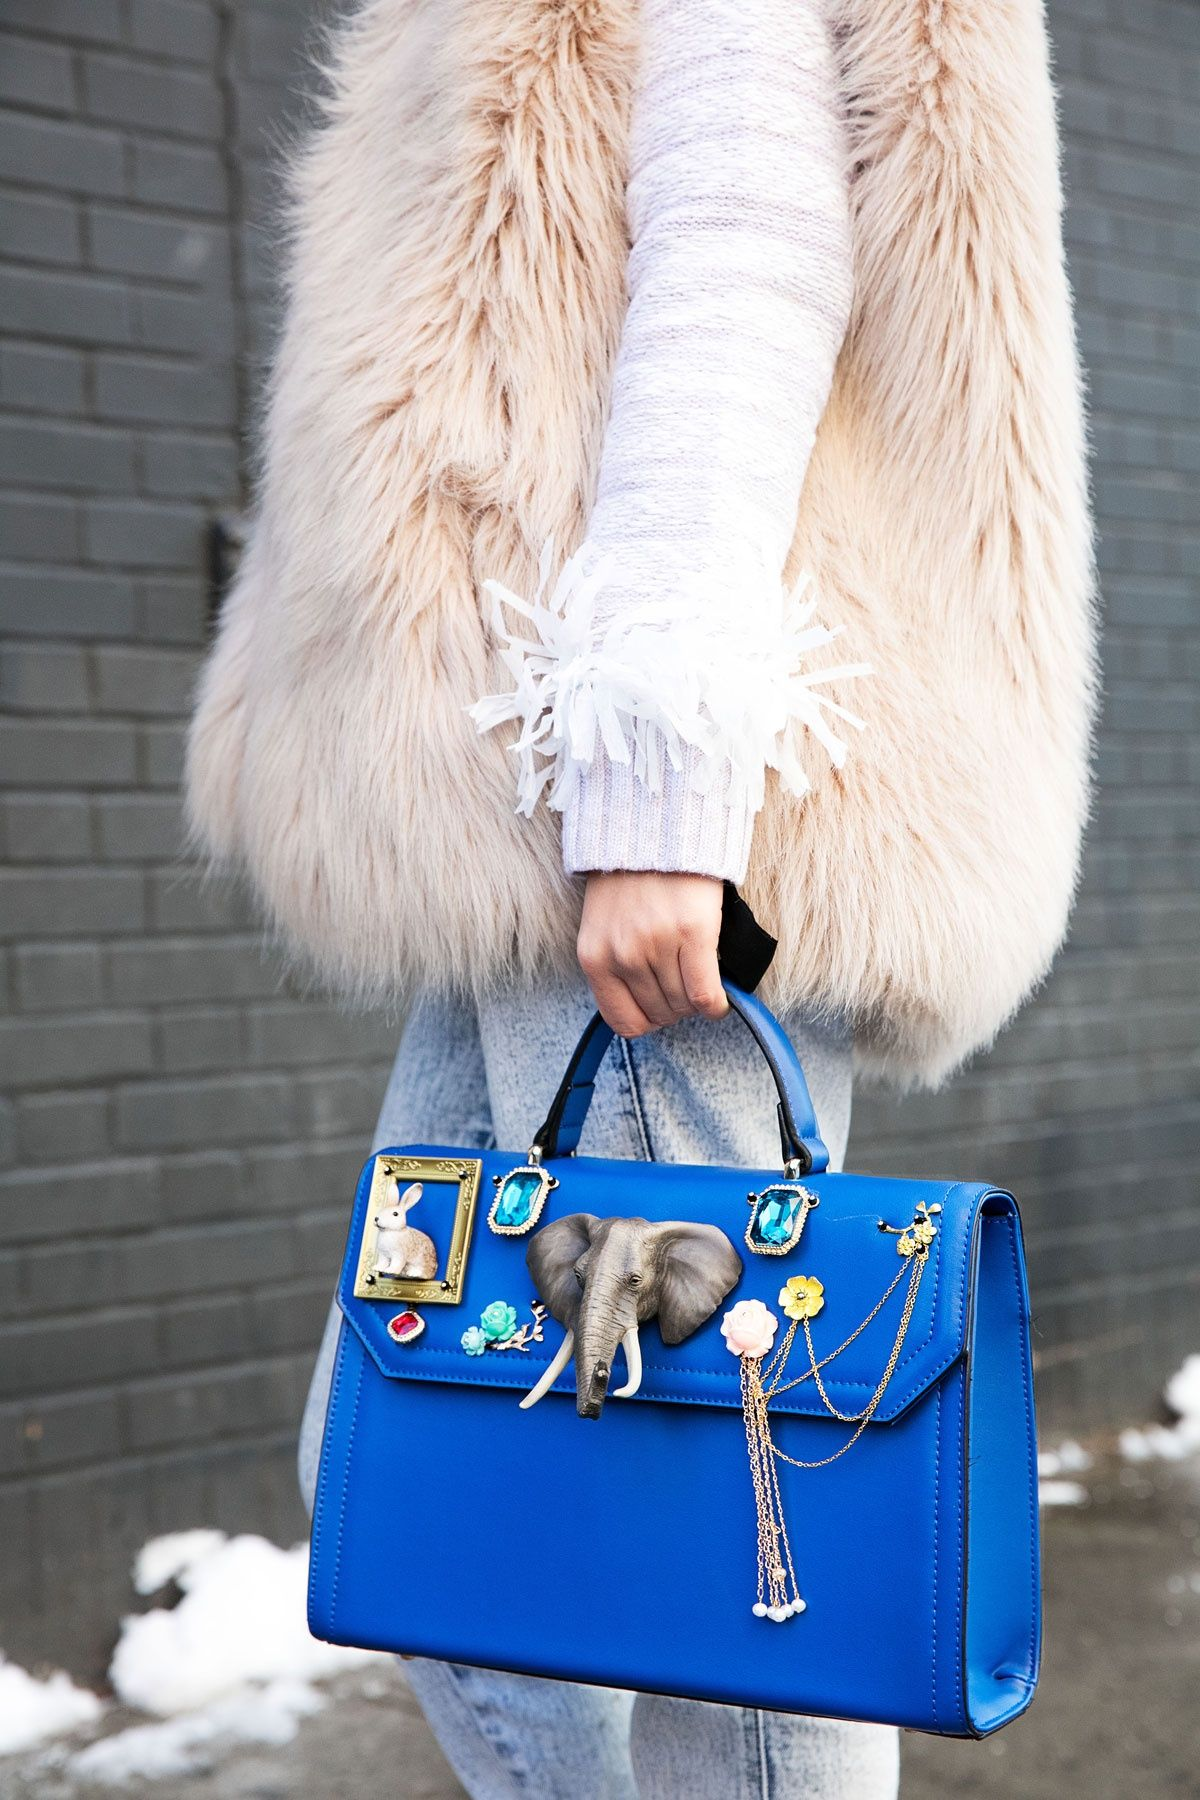 18 Best Street Style Accessories from NYFW - Cosmopolitan.com